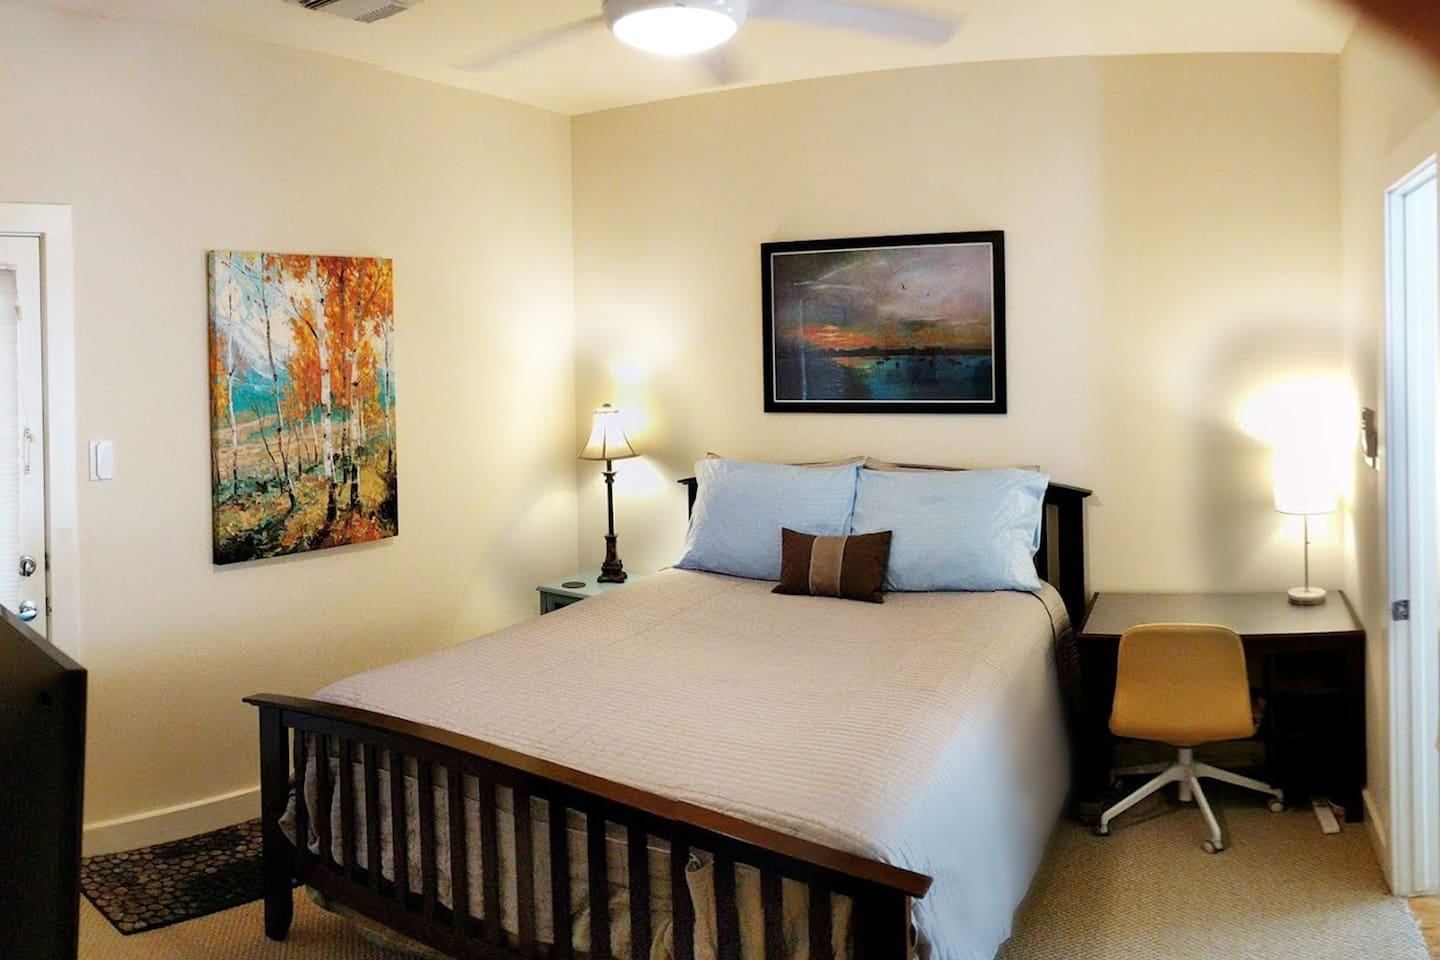 Queen size bed easily sleeps two. Always fresh sheets and pillows in your private bedroom, which is blocked off from the rest of the home.